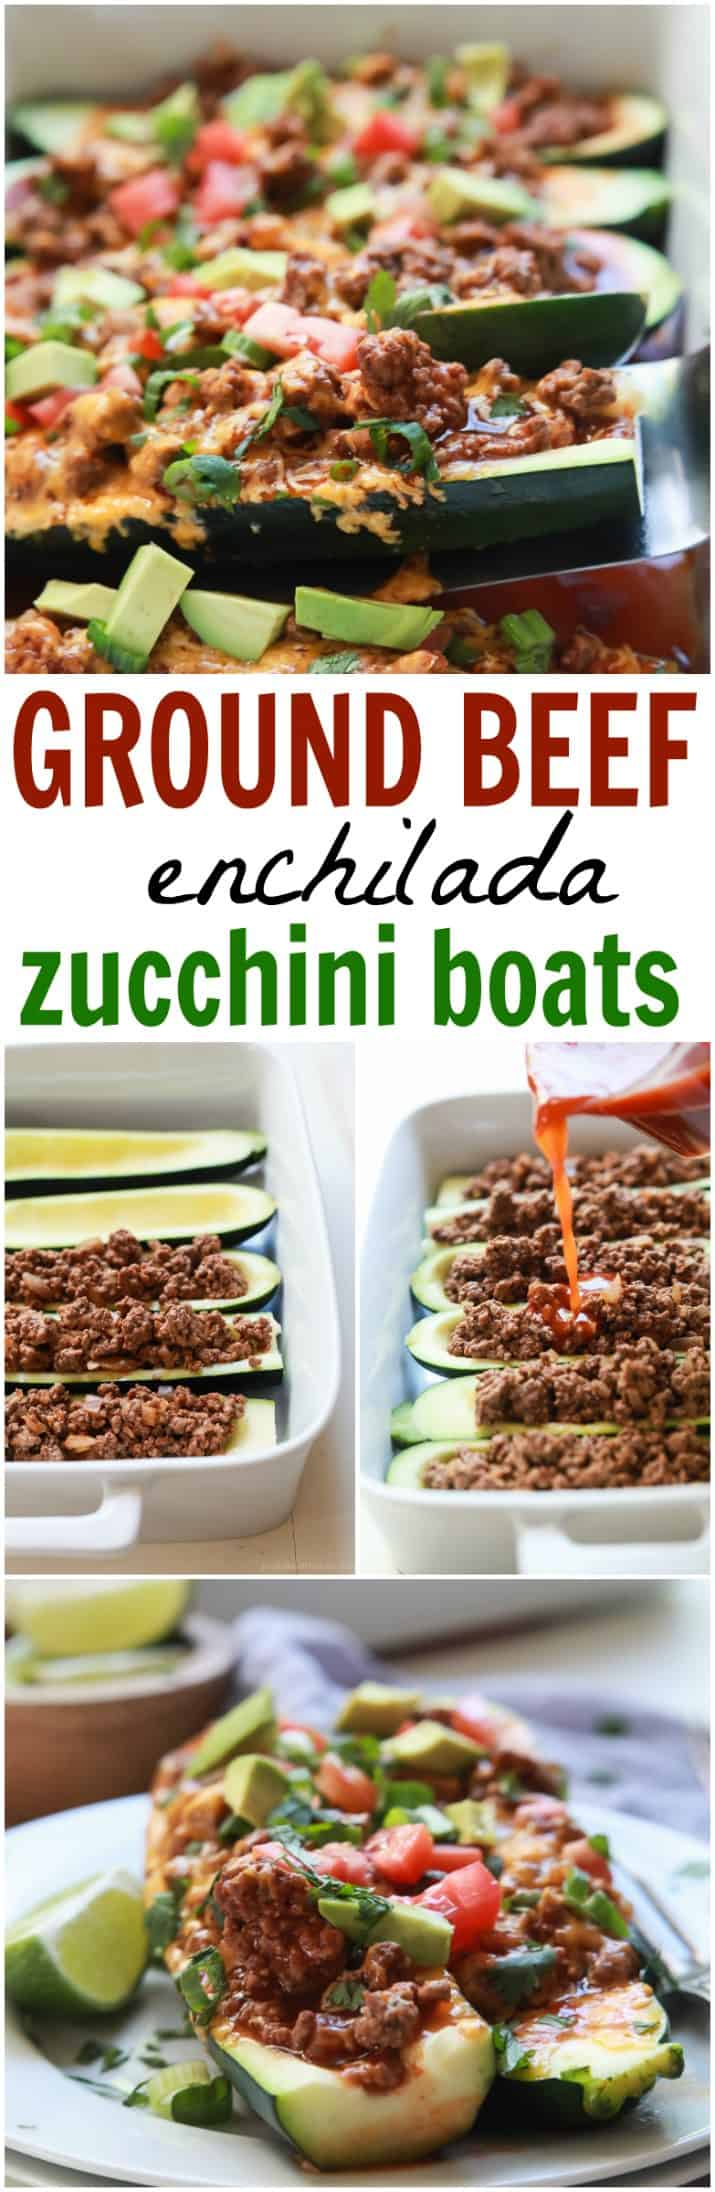 Ground Beef Enchilada Zucchini Boats - a healthy gluten free version of classic Beef Enchiladas. A little over 30 minutes to make but well worth it for the bold flavors and a calorie count of 222! | joyfulhealthyeats.com